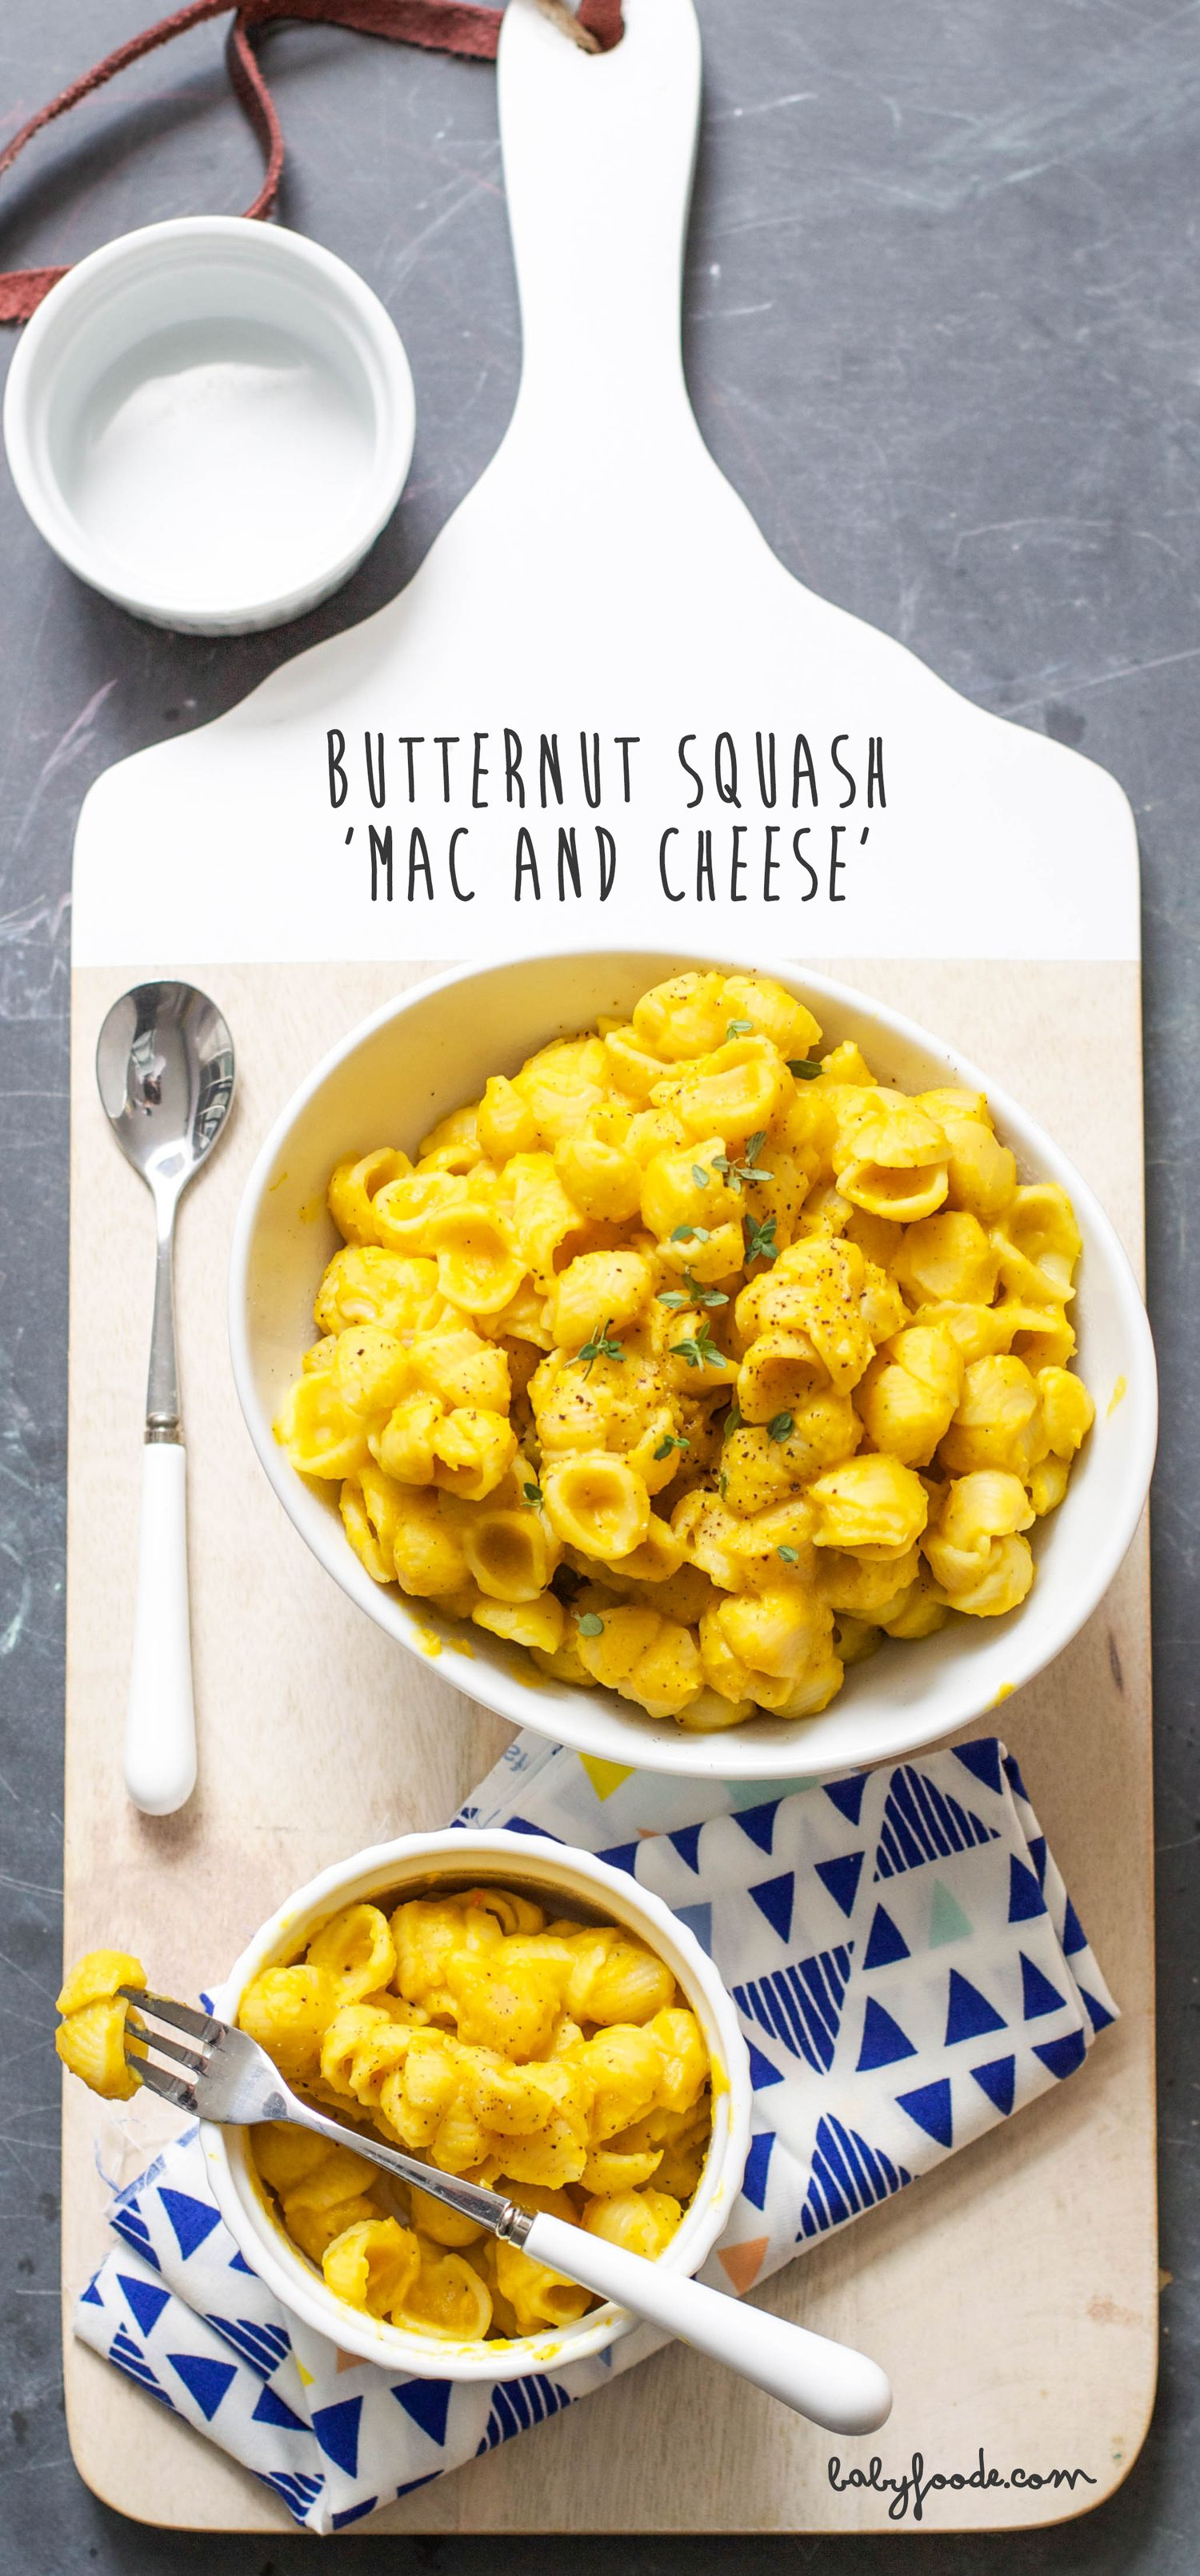 Butternut squash mac and cheese for toddler baby food recipes butternut squash mac and cheese for toddler baby foode organic baby food recipes to inspire adventurous eating forumfinder Images